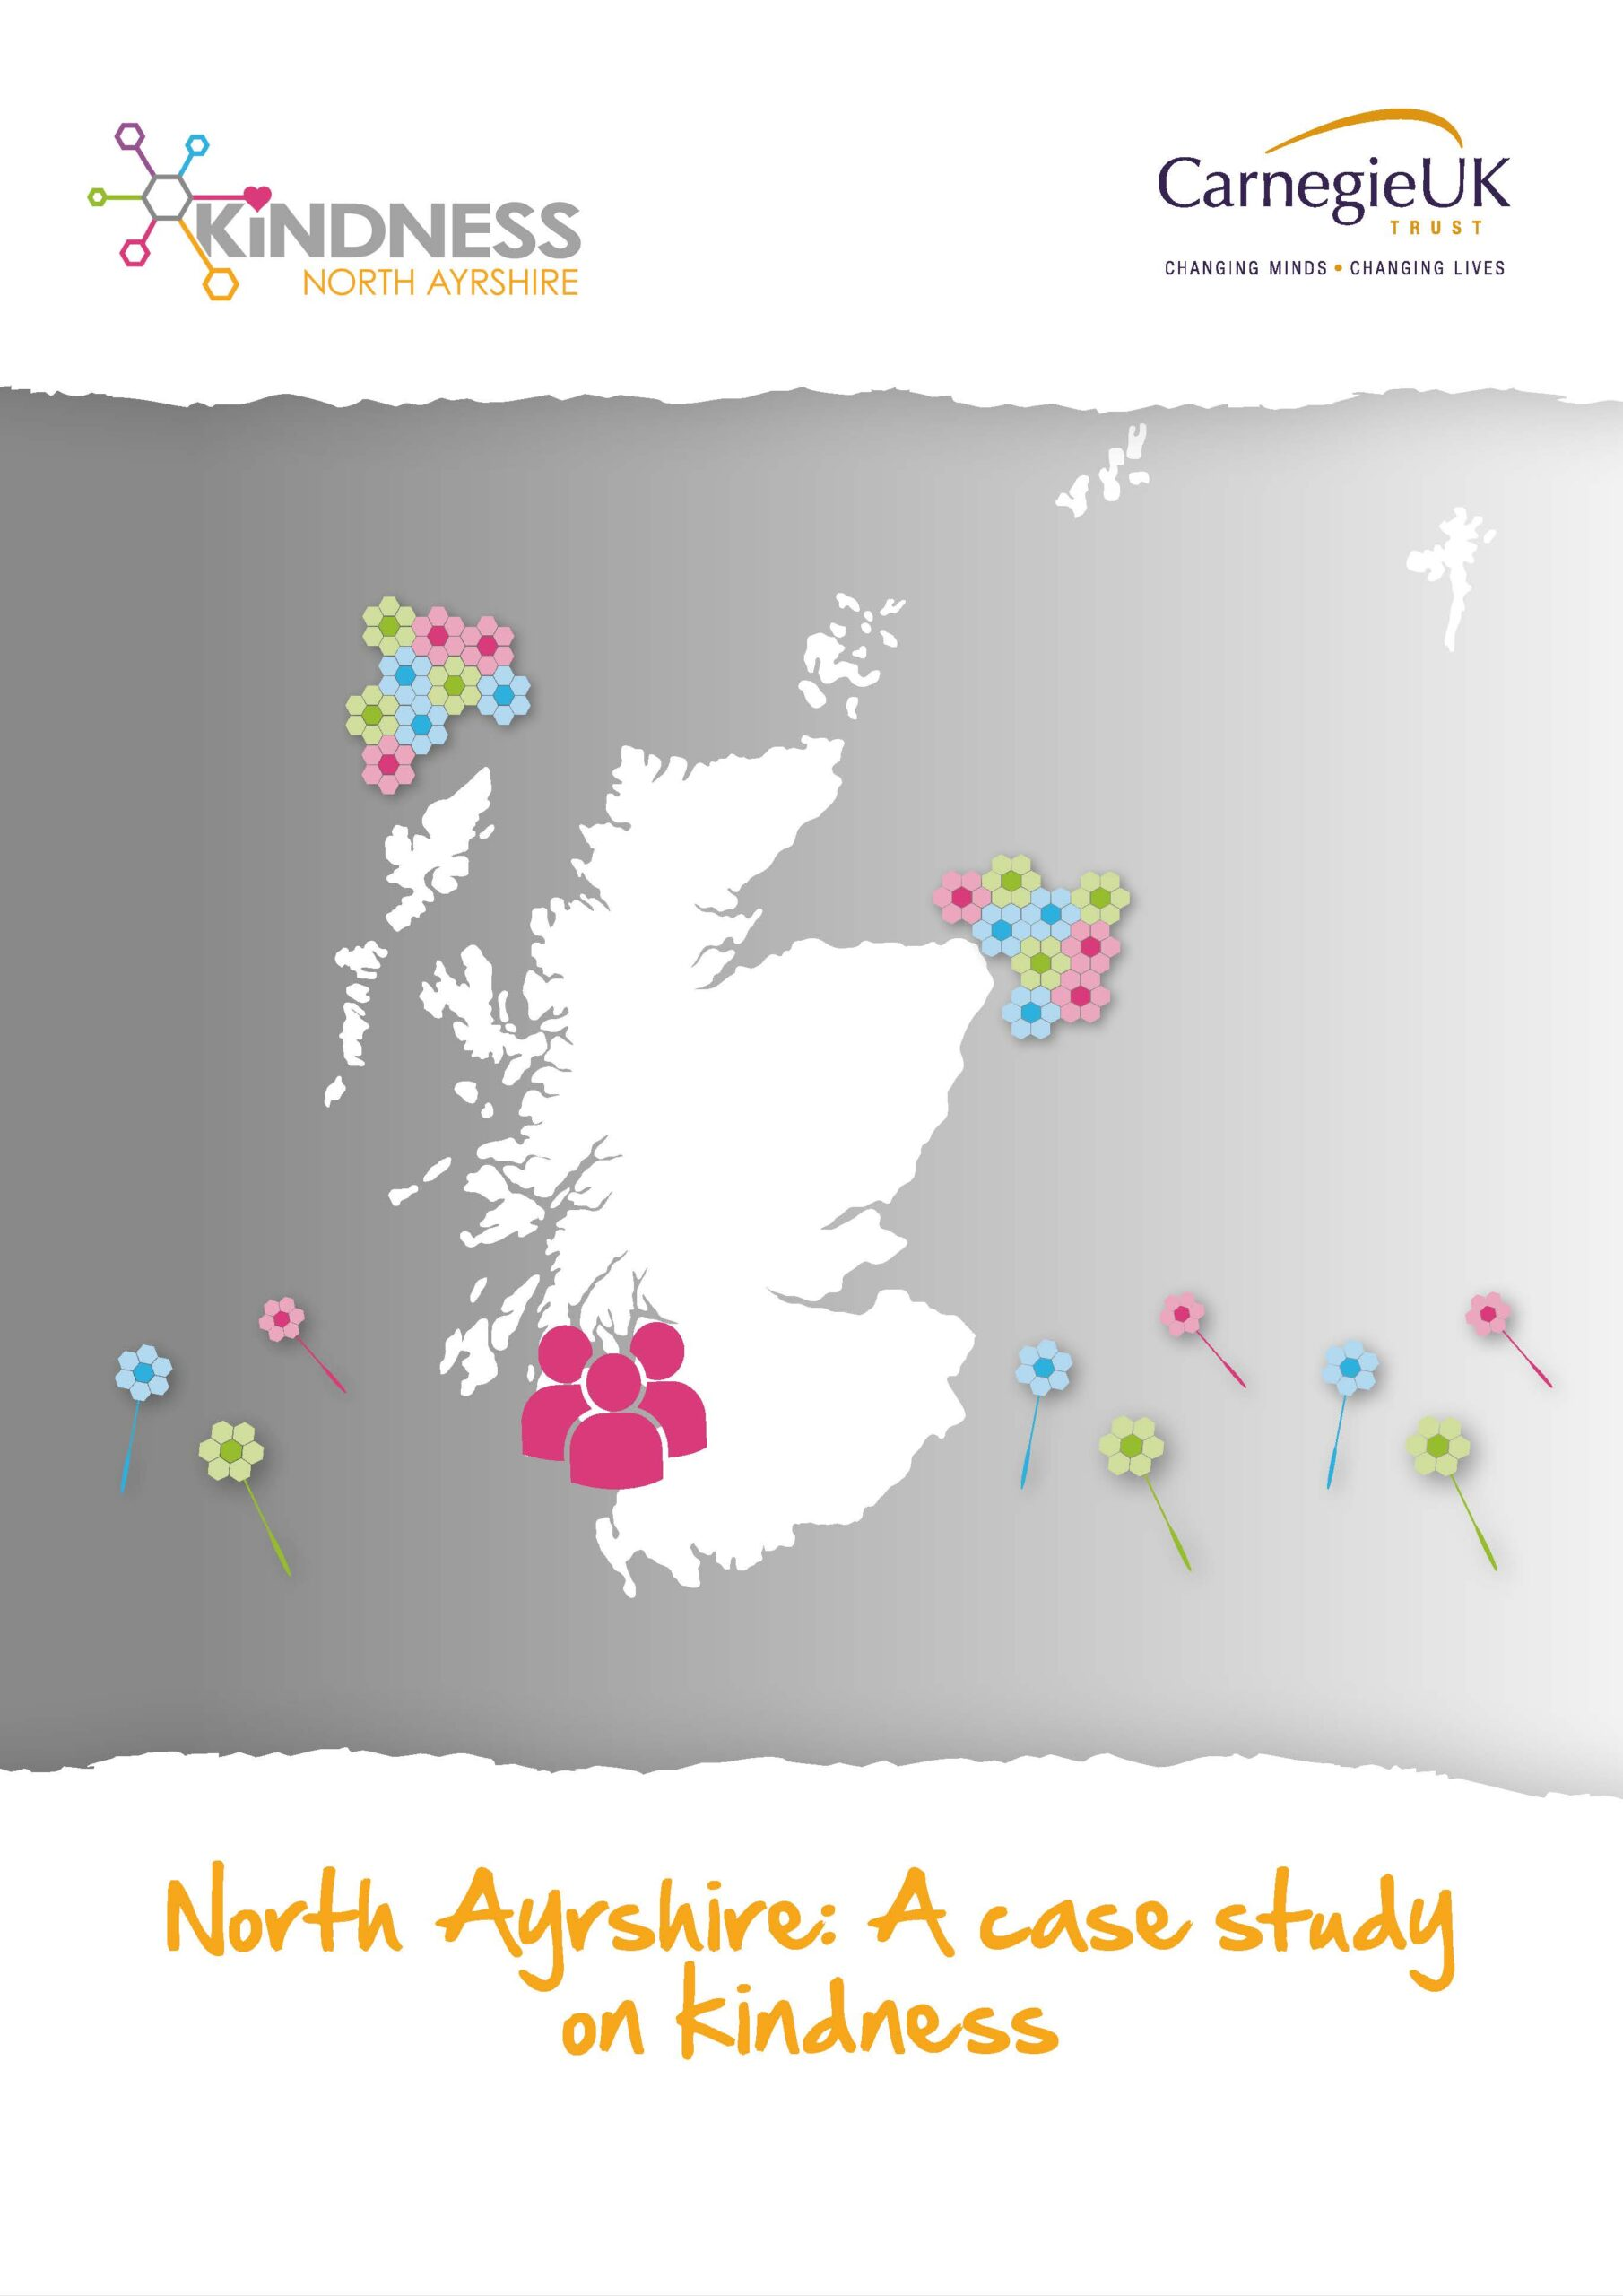 North Ayrshire: A case study on Kindness